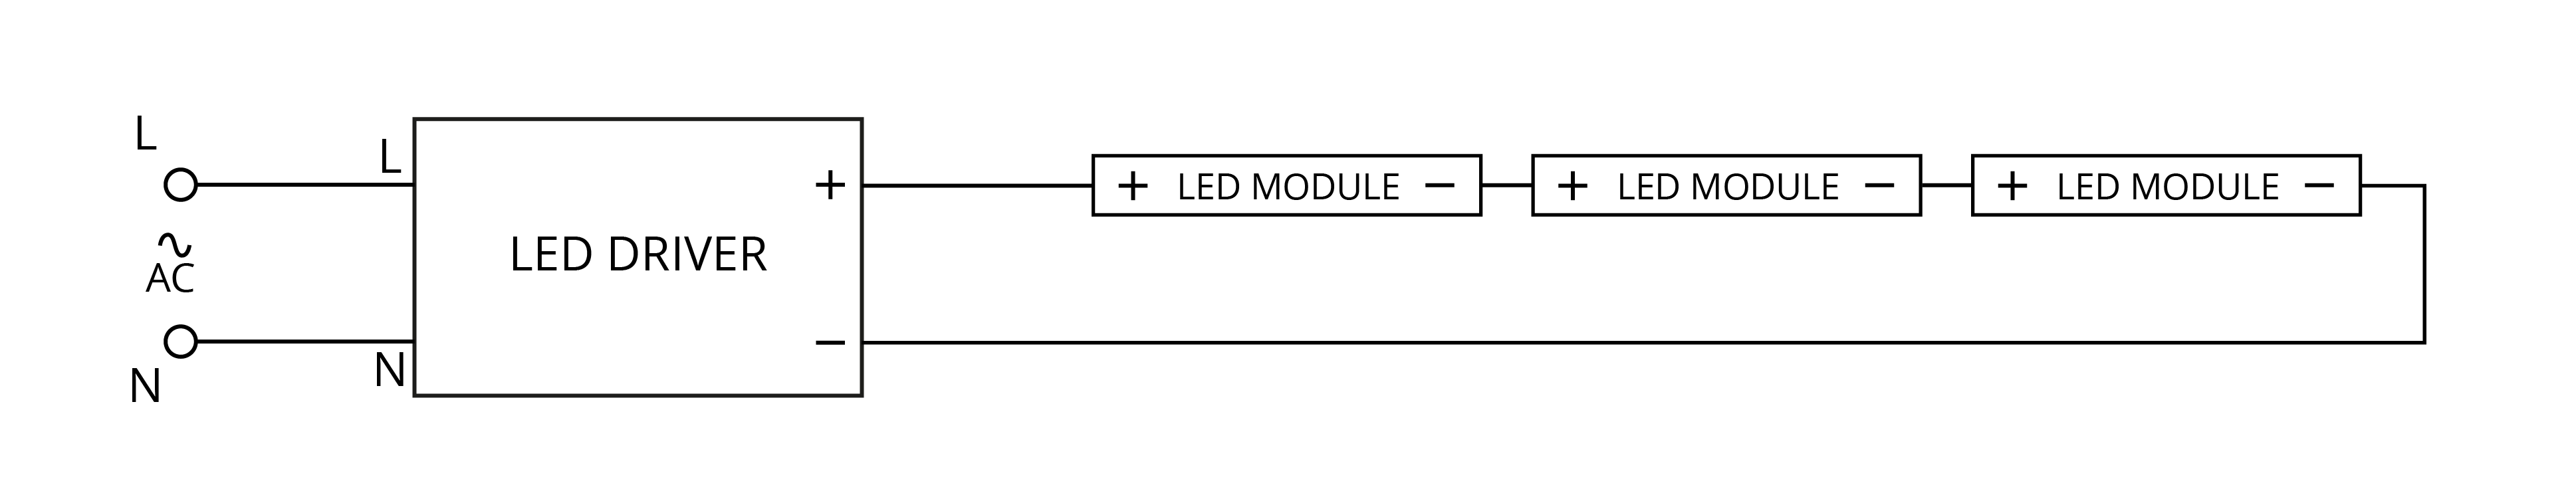 How To Connect Led Modules Into Ac Network Arrant Light Blog Wiring In Parallel Leds Connection Of Through The Driver